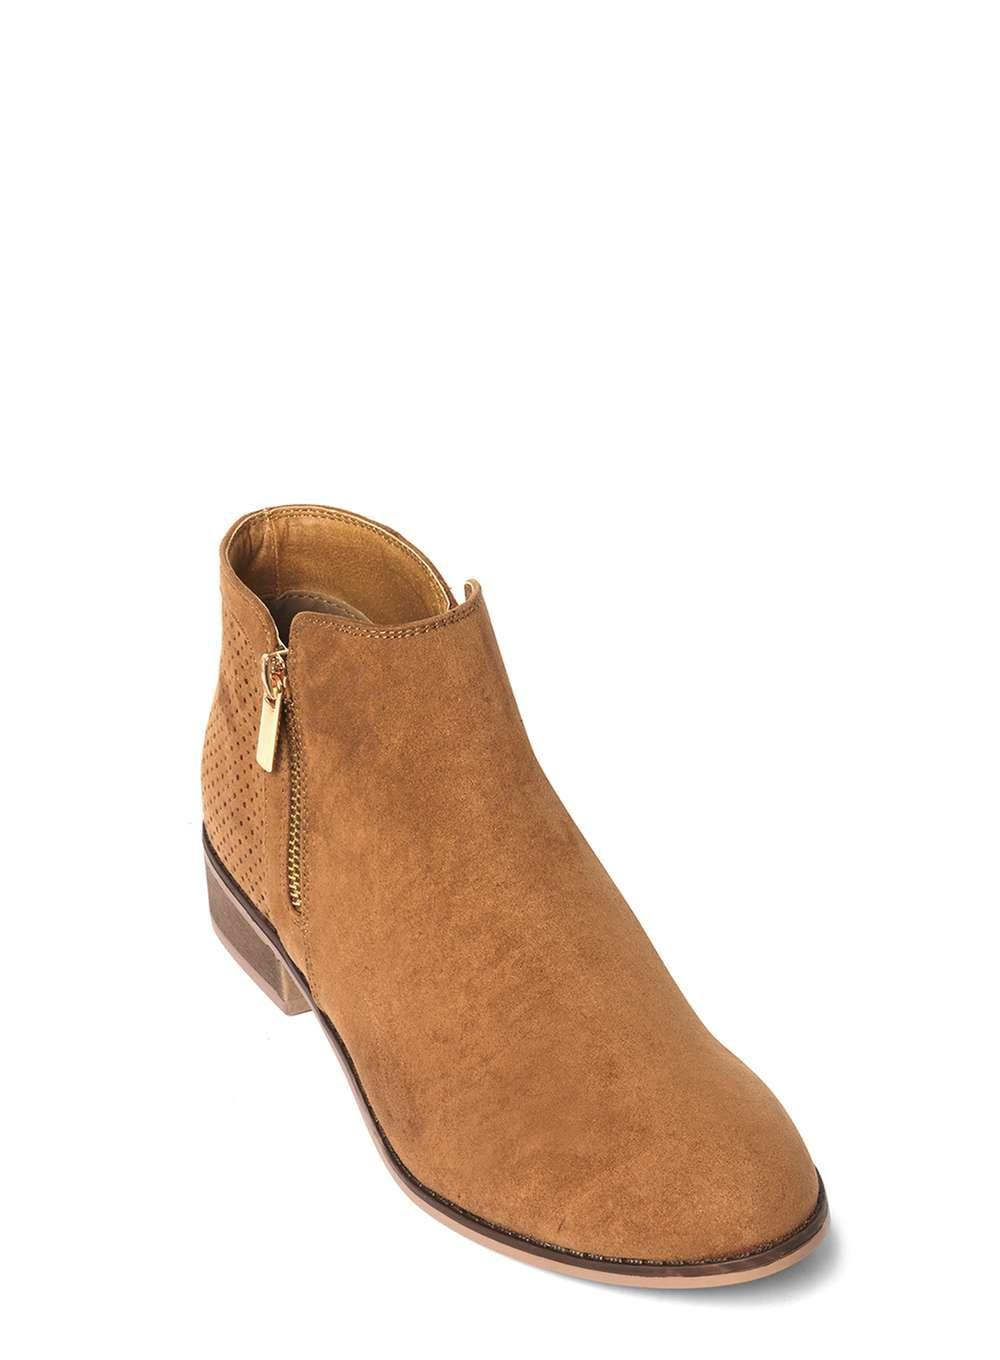 Dorothy Perkins Tan 'manta' Zip Ankle Boots in Brown